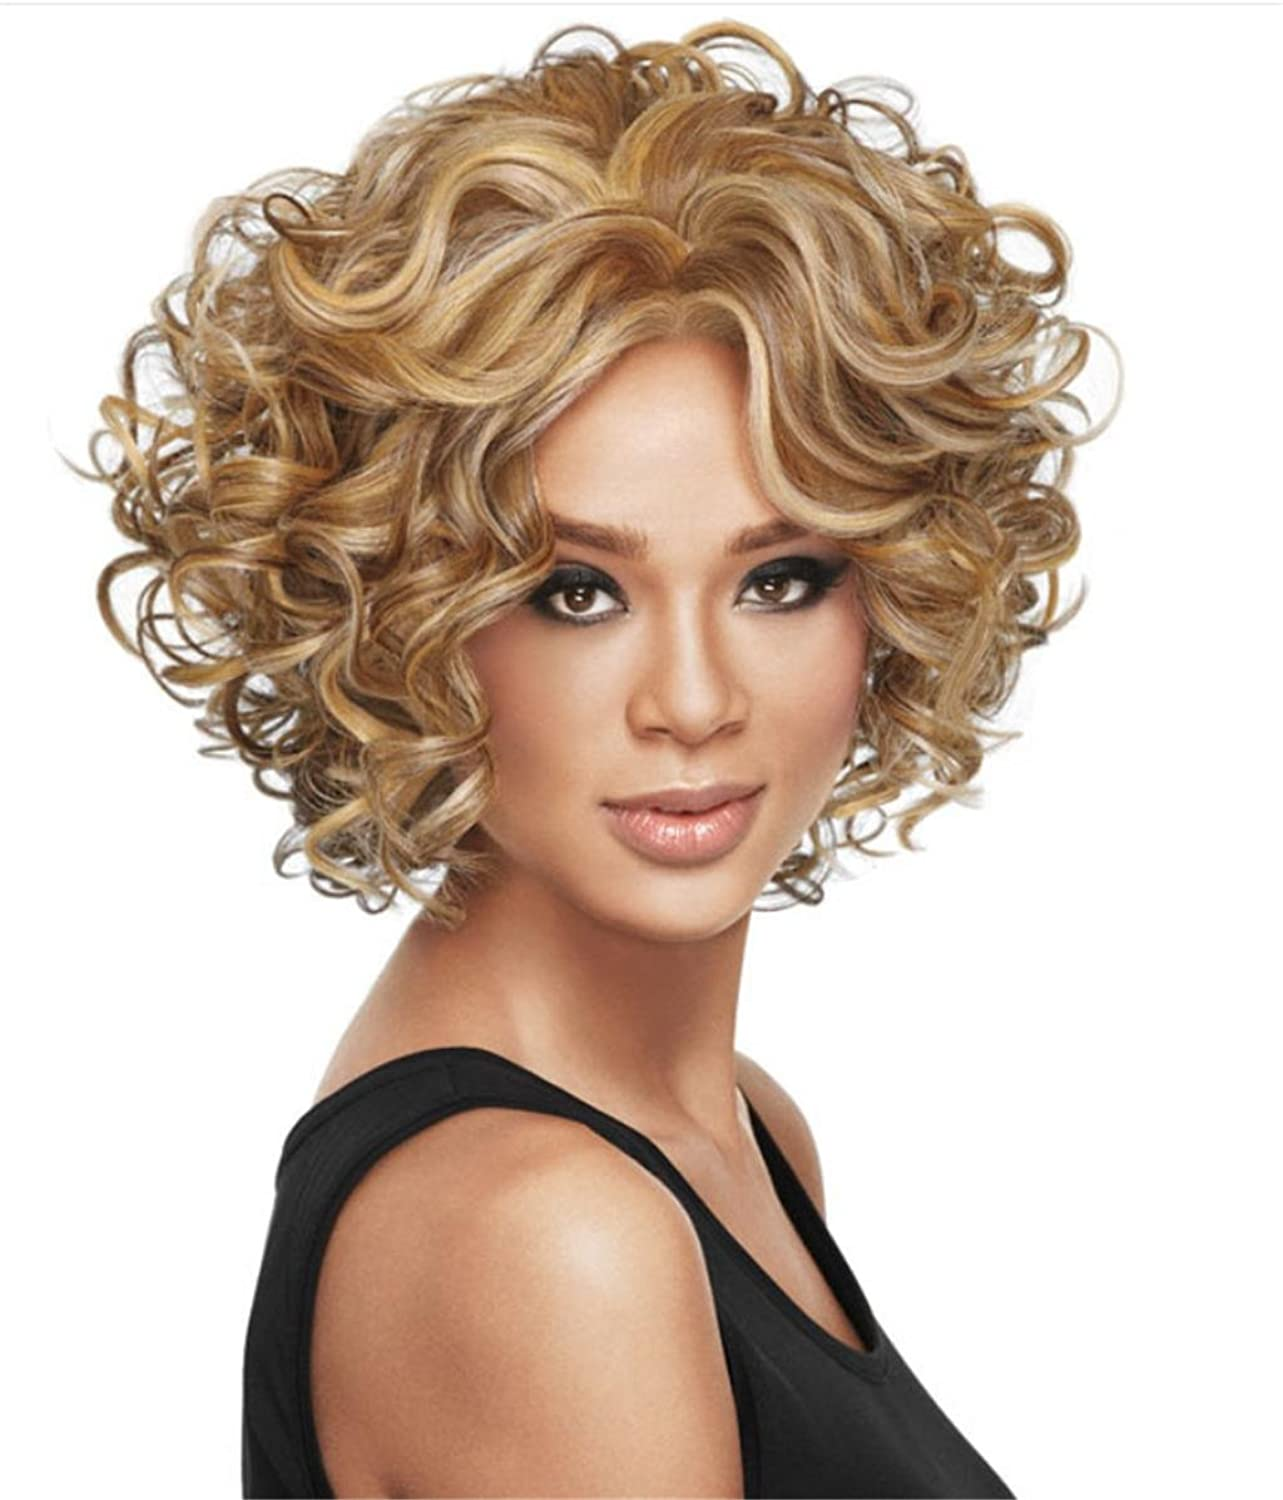 AN-LKYIQI Europe And The United States Fashion Lady schwarz Burst Head Short Hair Wig B06XY9BBY4 Abrechnungspreis  | Up-to-date-styling